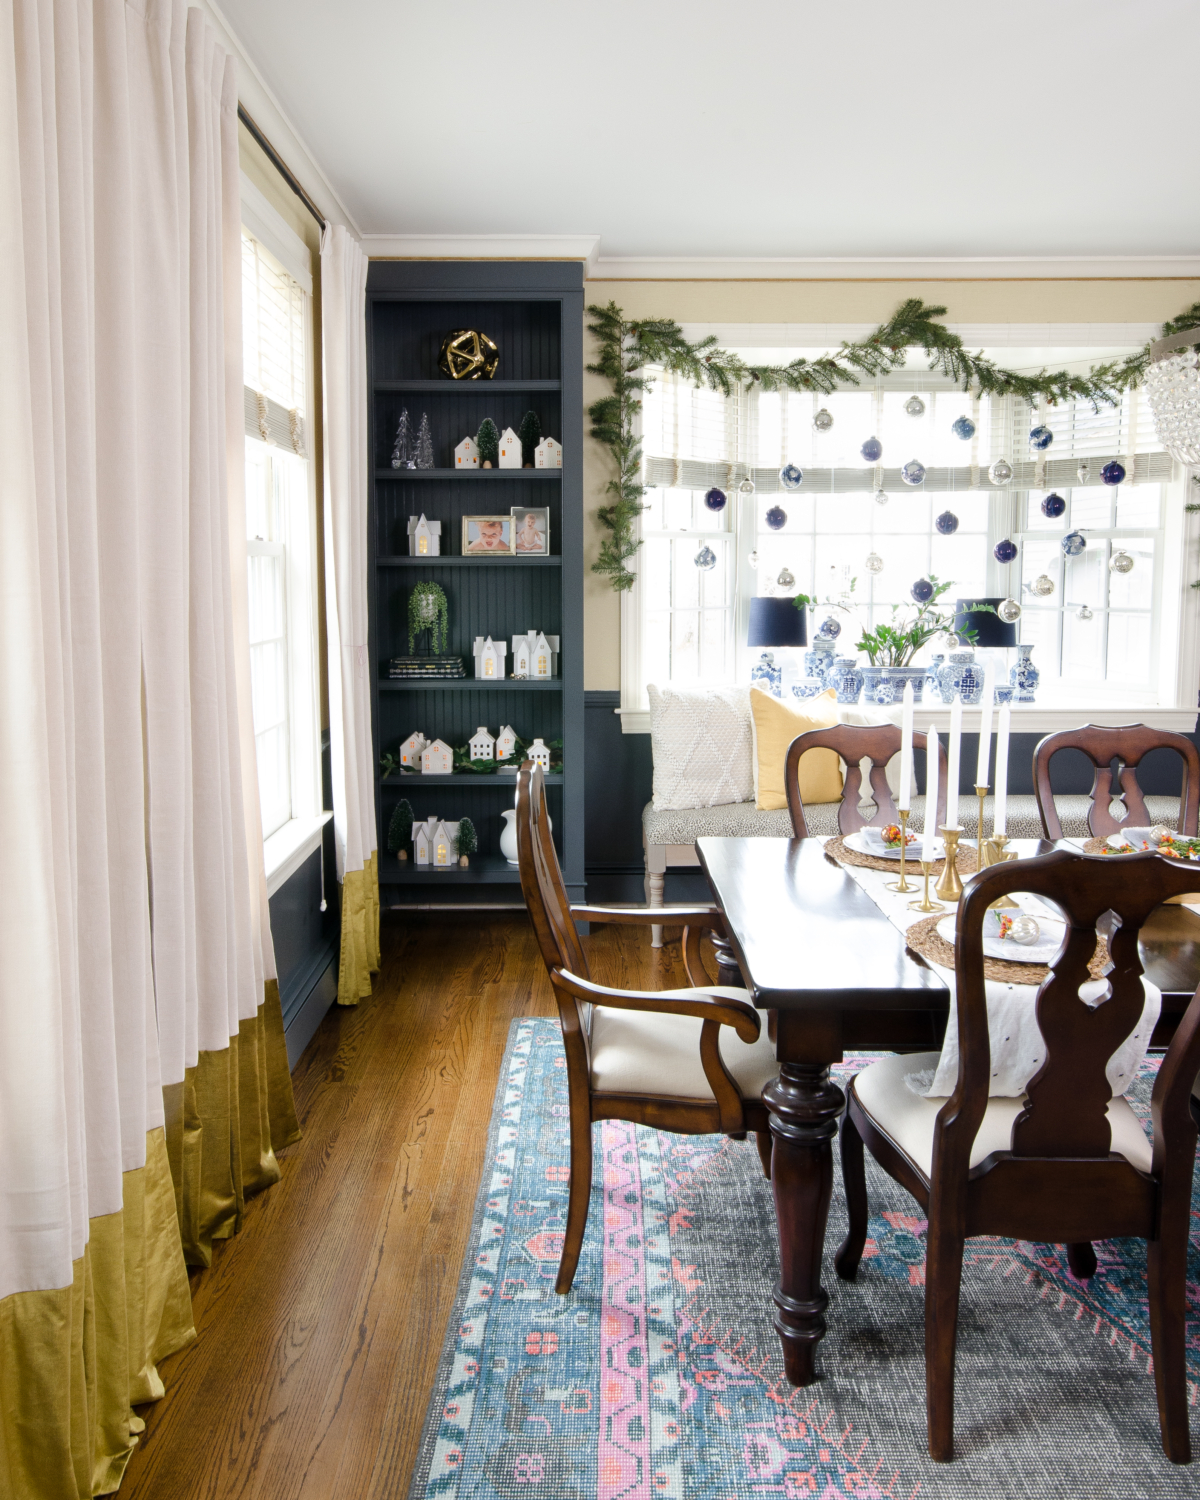 Christmas dining room with blue and white pottery, white ceramic houses, dark walls